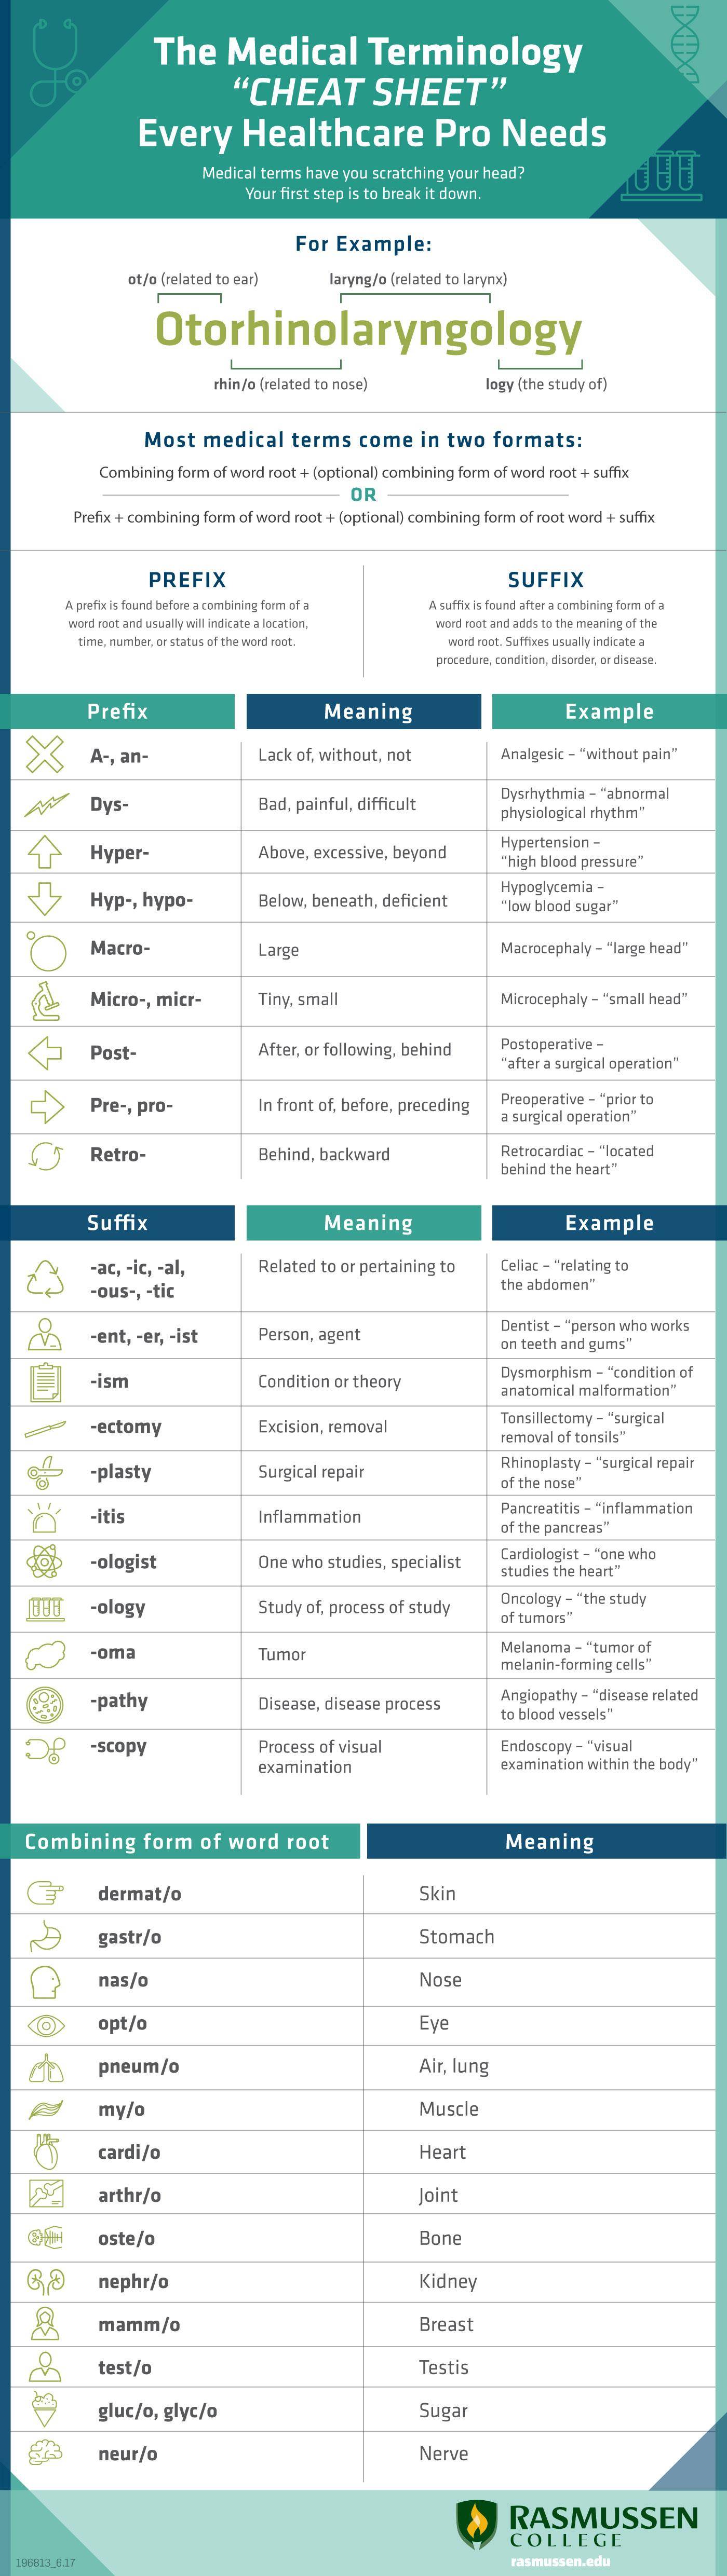 The Medical Terminology Cheat Sheet Every Healthcare Pro